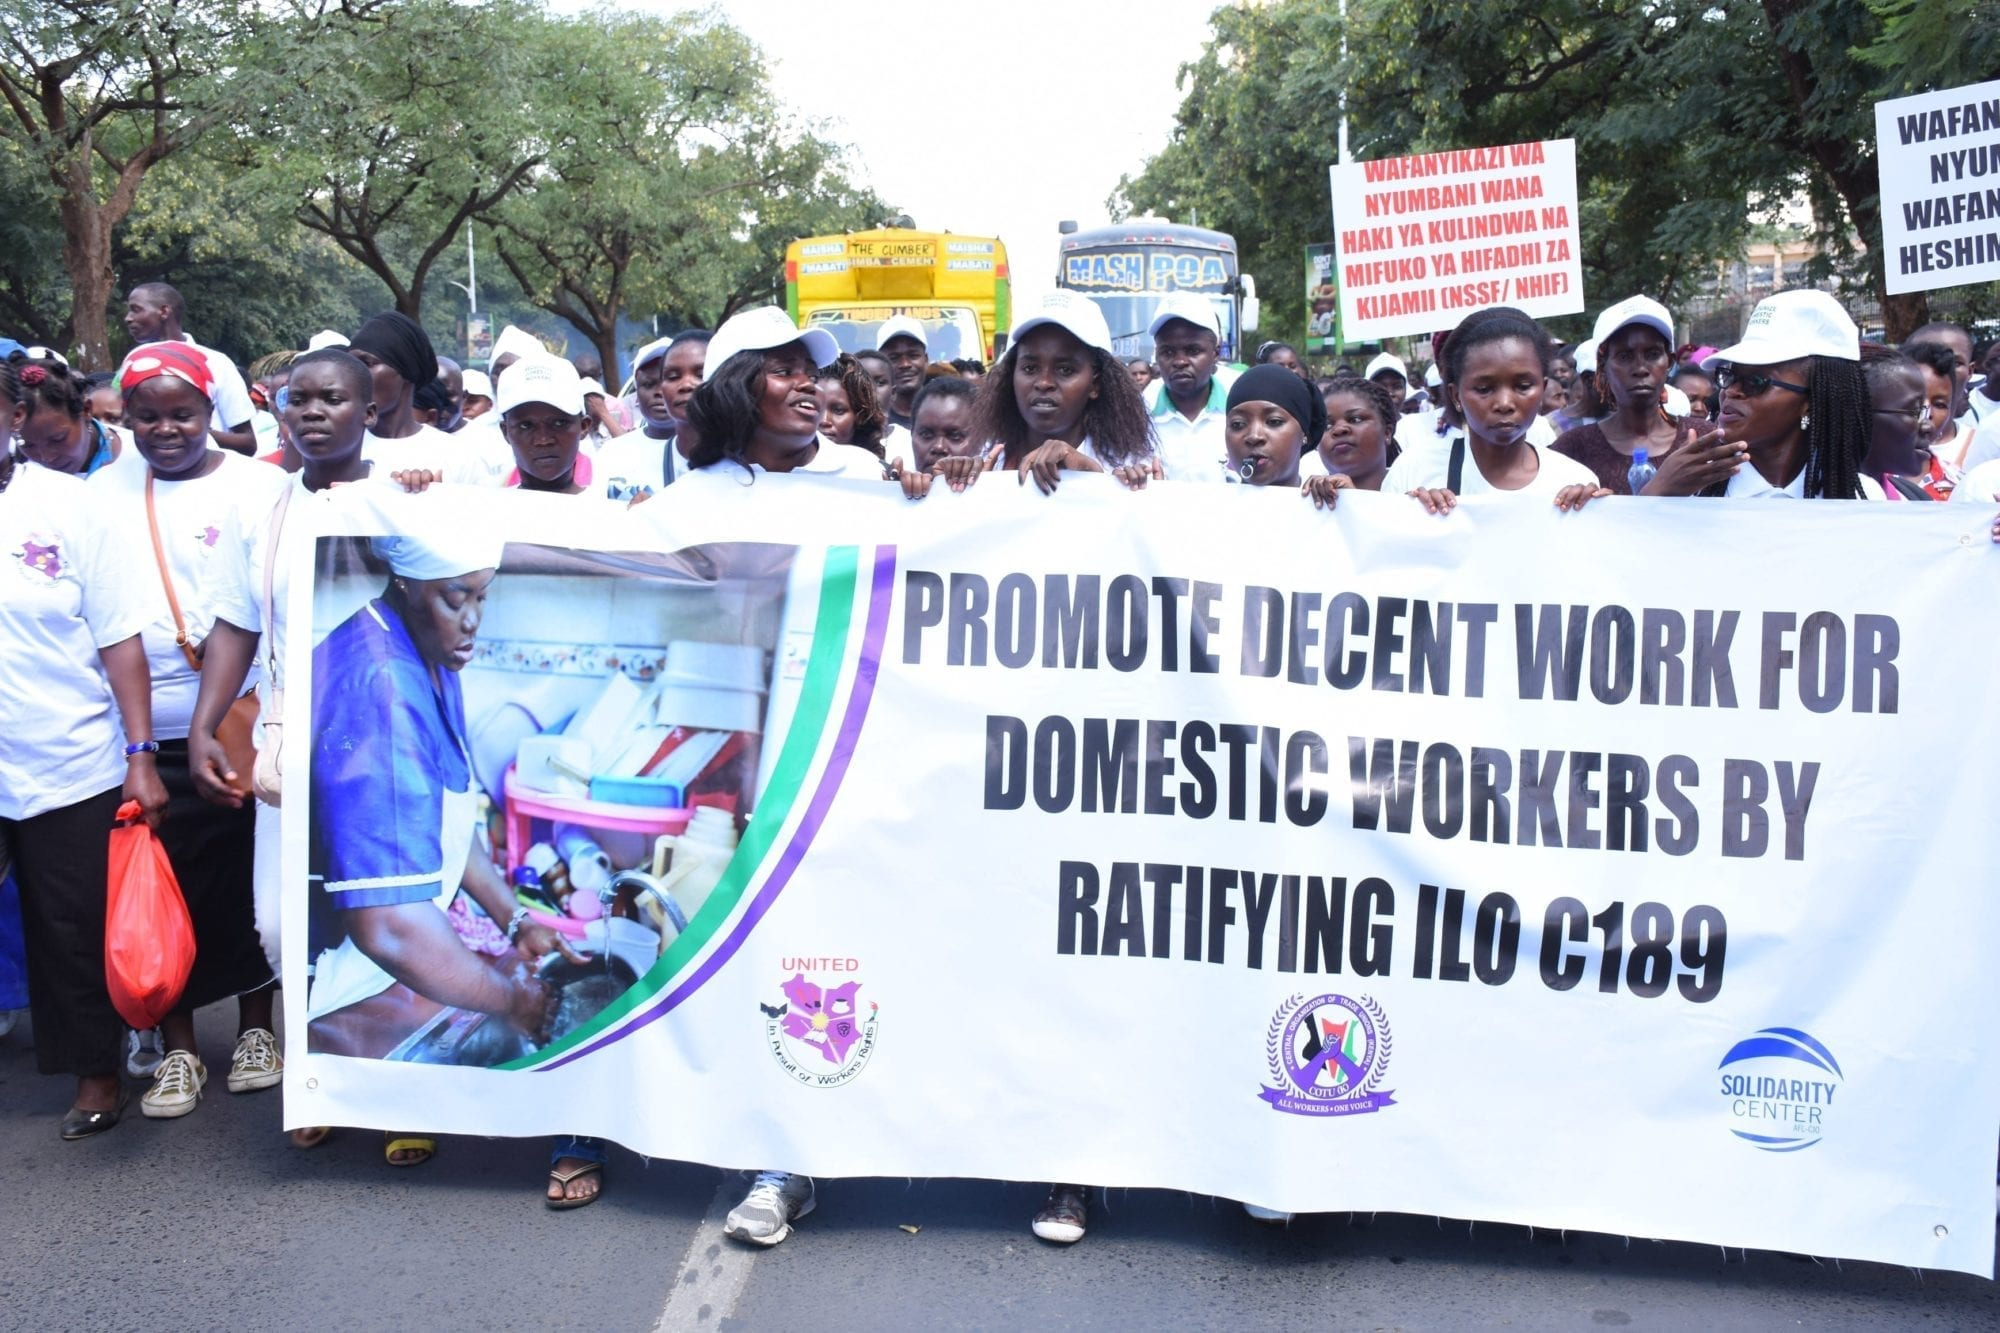 Domestic Workers Fight for Their Rights in Kenya